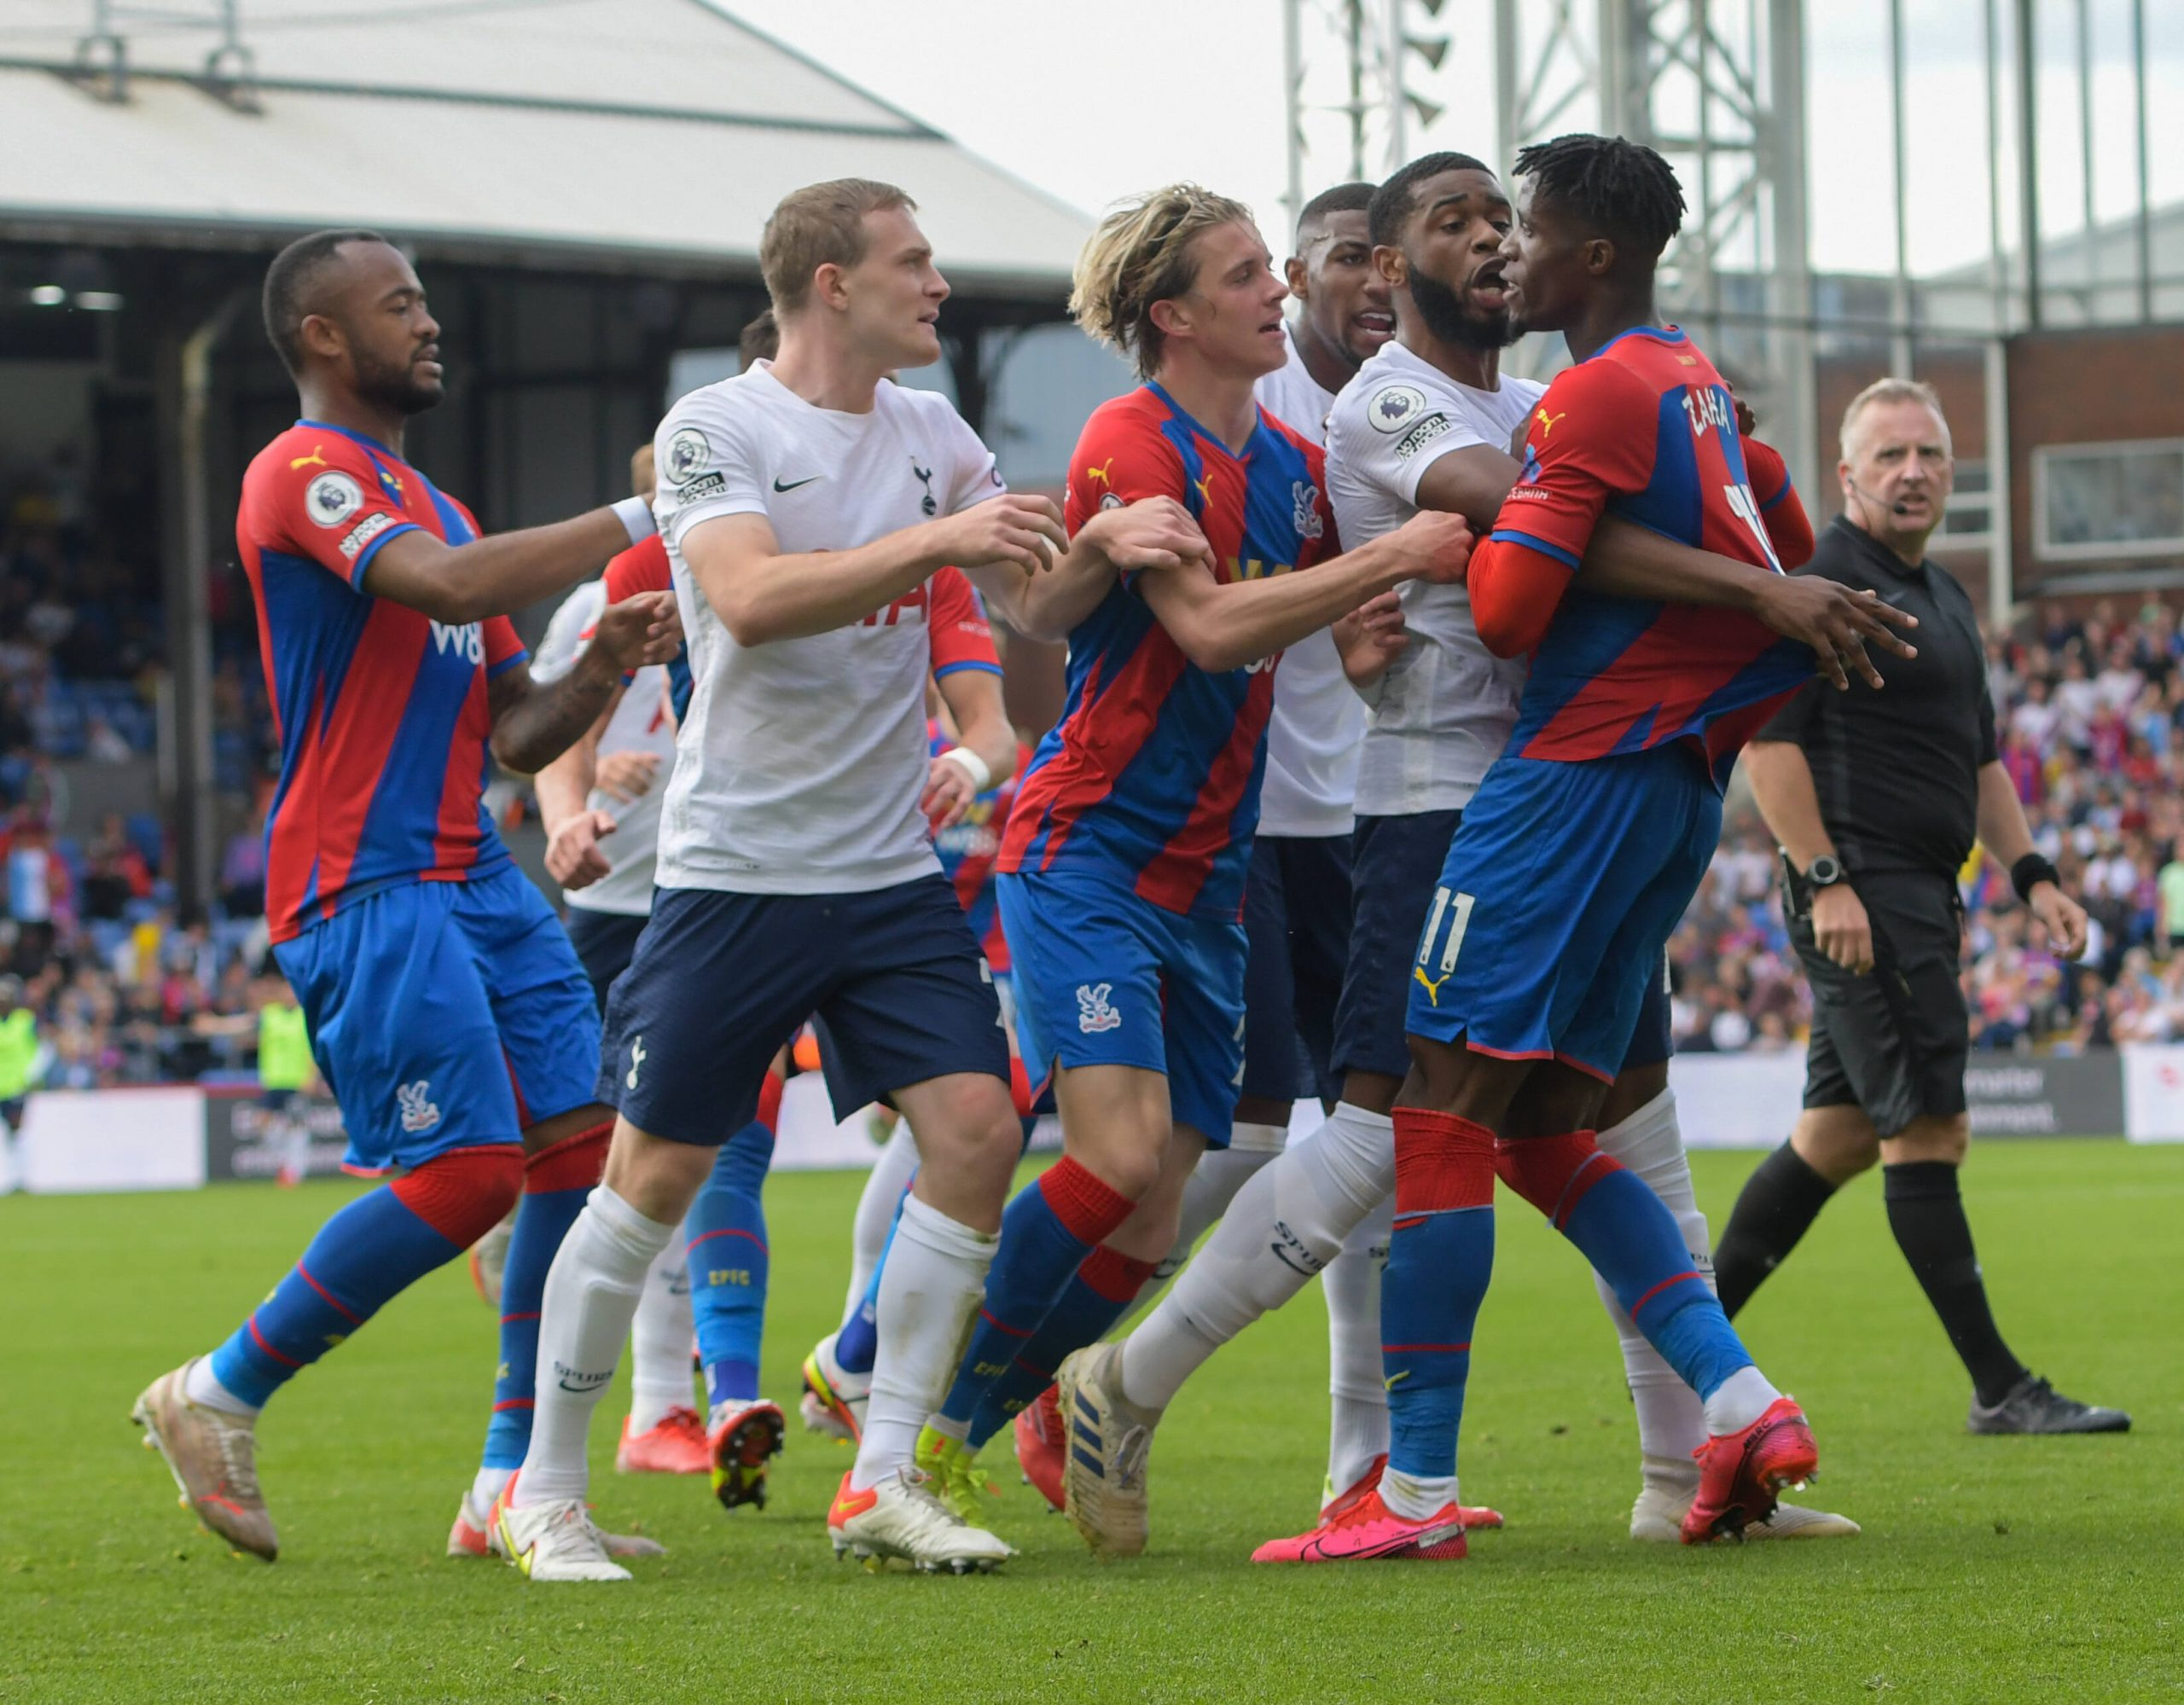 Spurs lost 3-0 against Crystal Palace in the London derby.